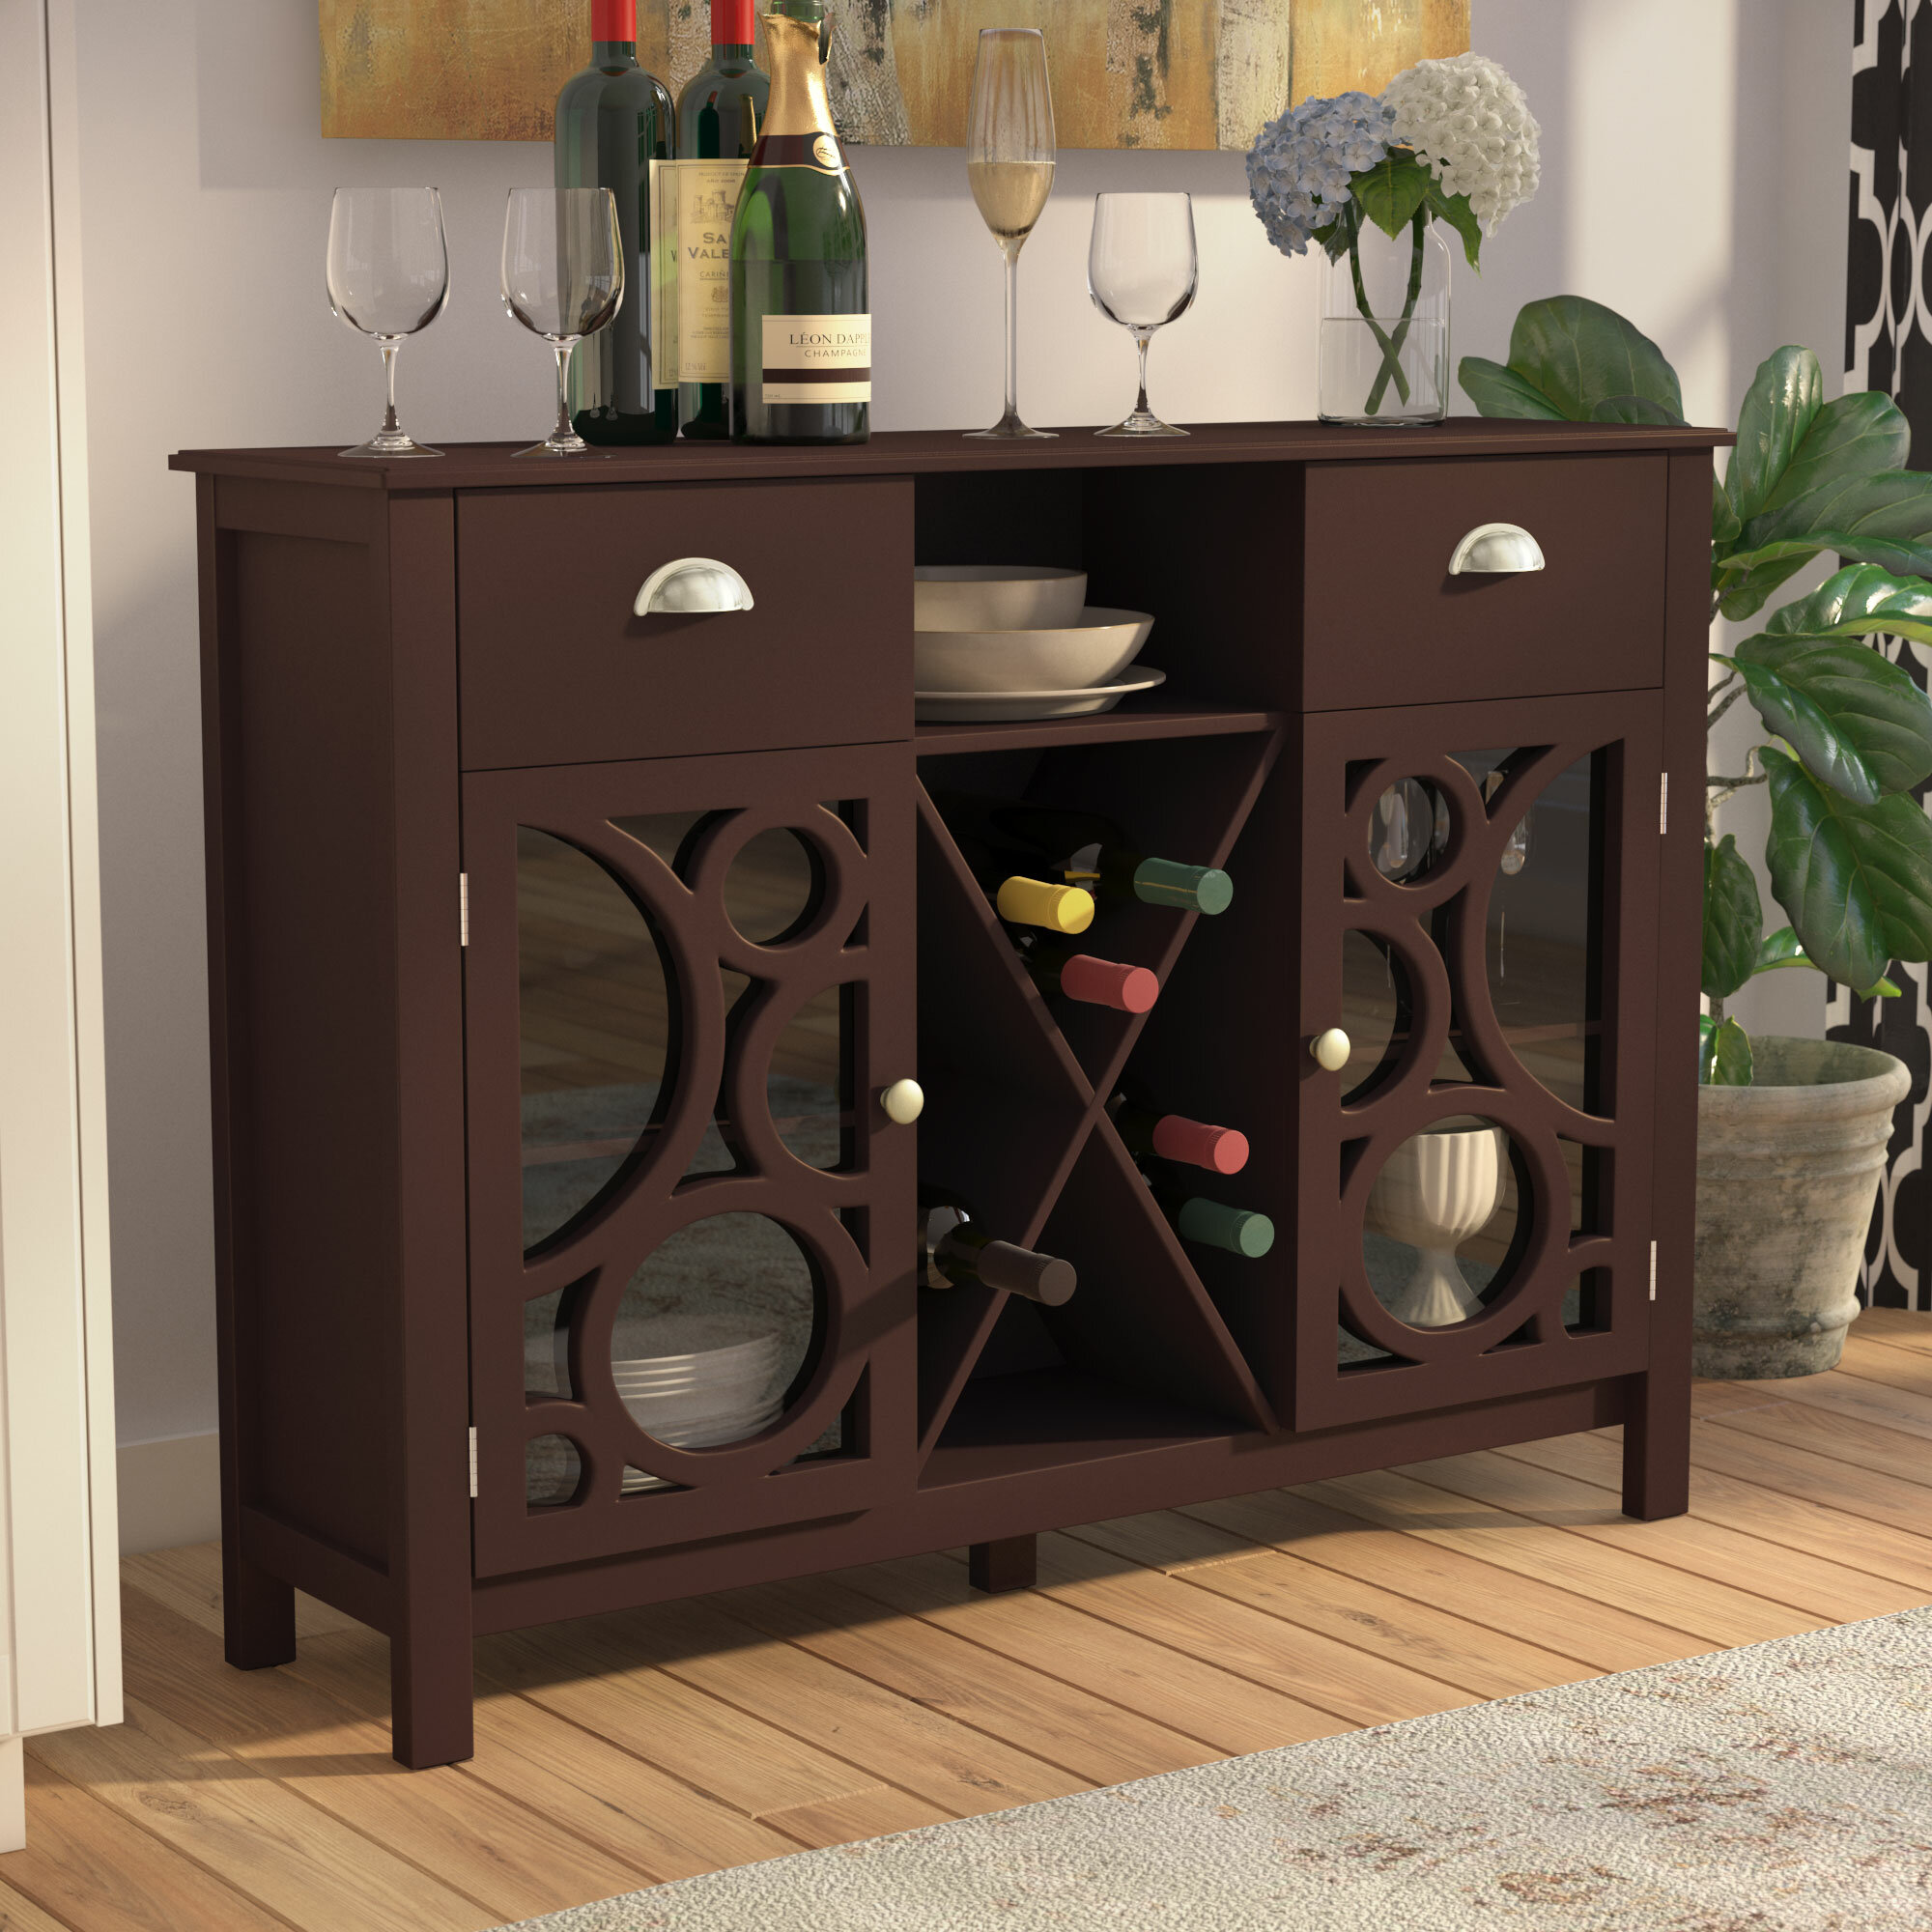 storage coolers l cellar refrigerated enthusiast cabinet classic refrigerators wine cellars